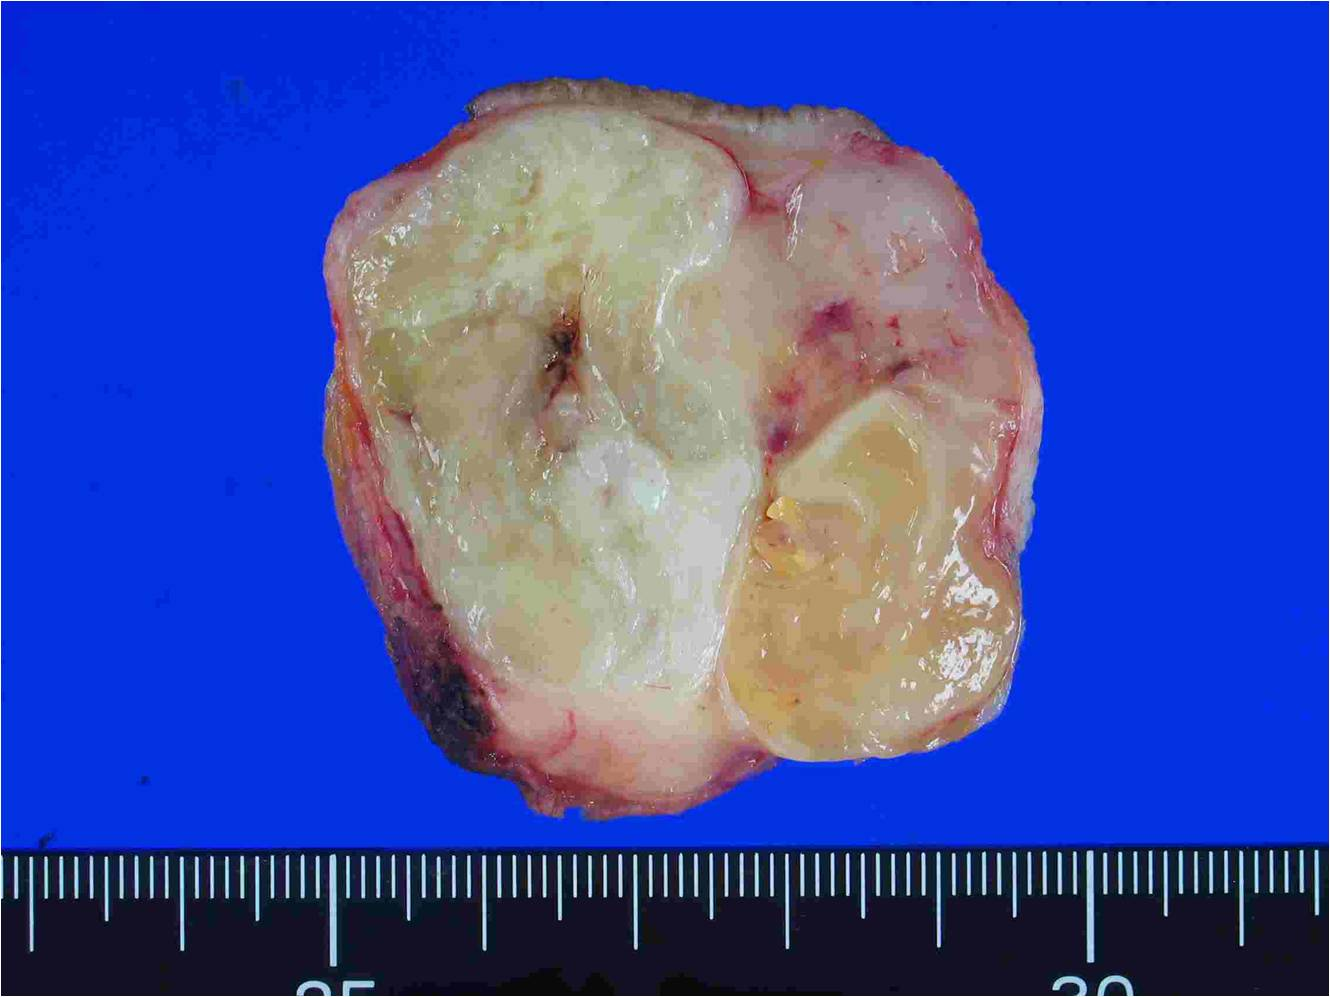 malignant breast tumor